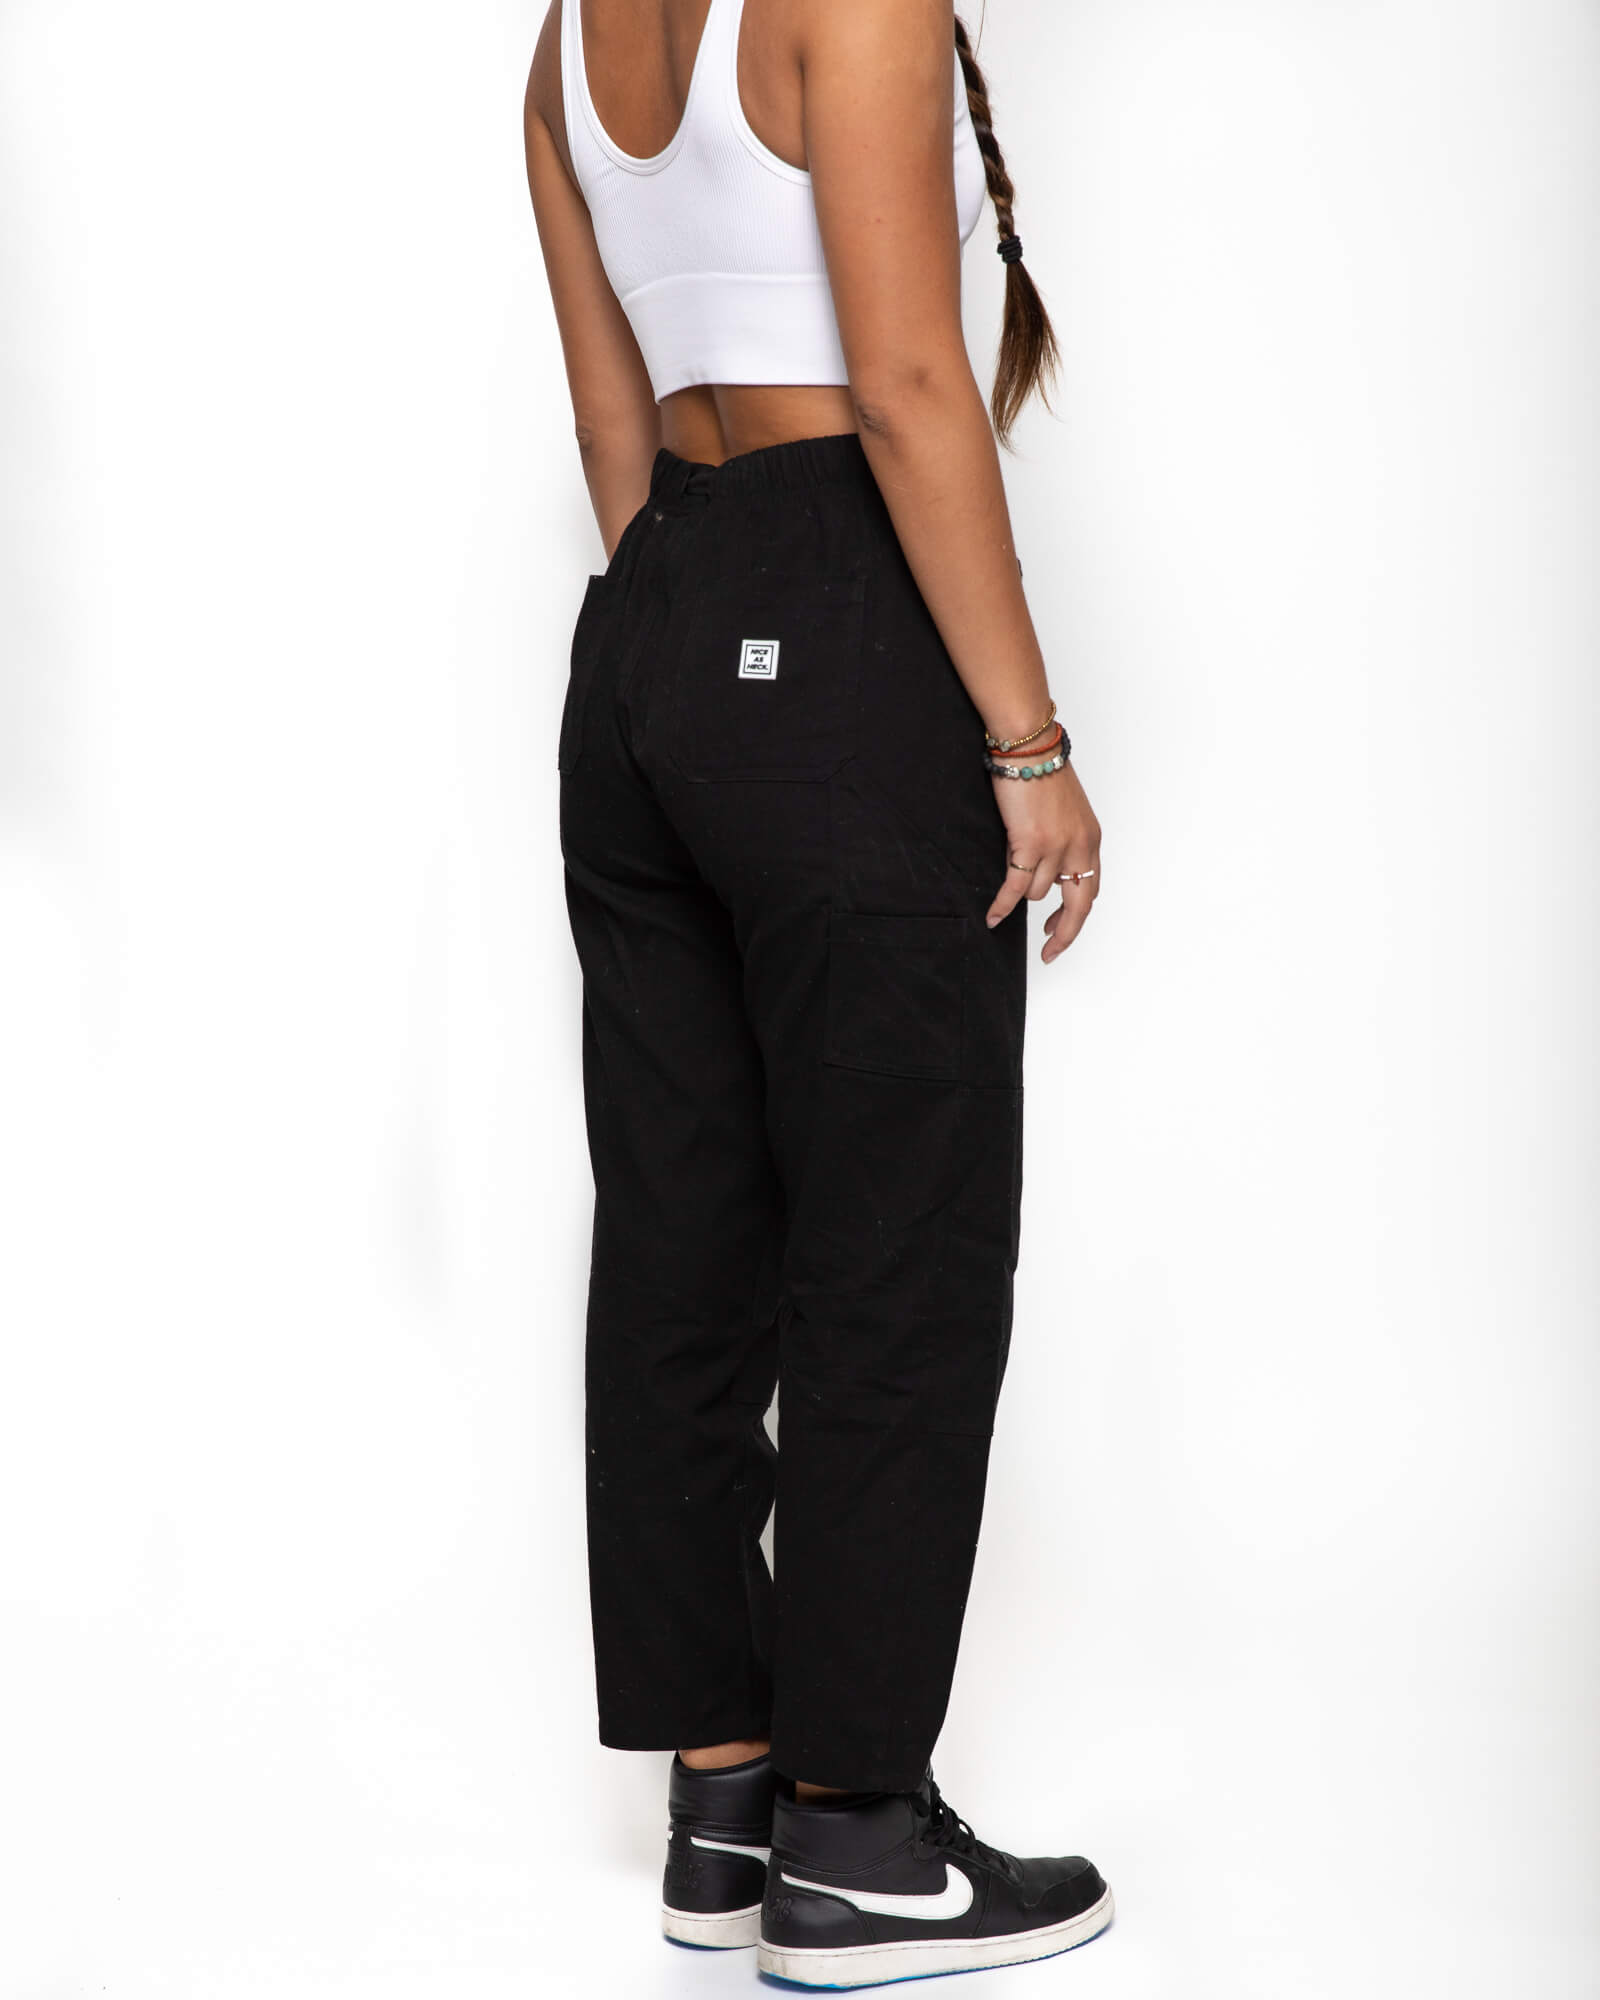 Side view of a female model wearing the black wood worker pants with a white tank top